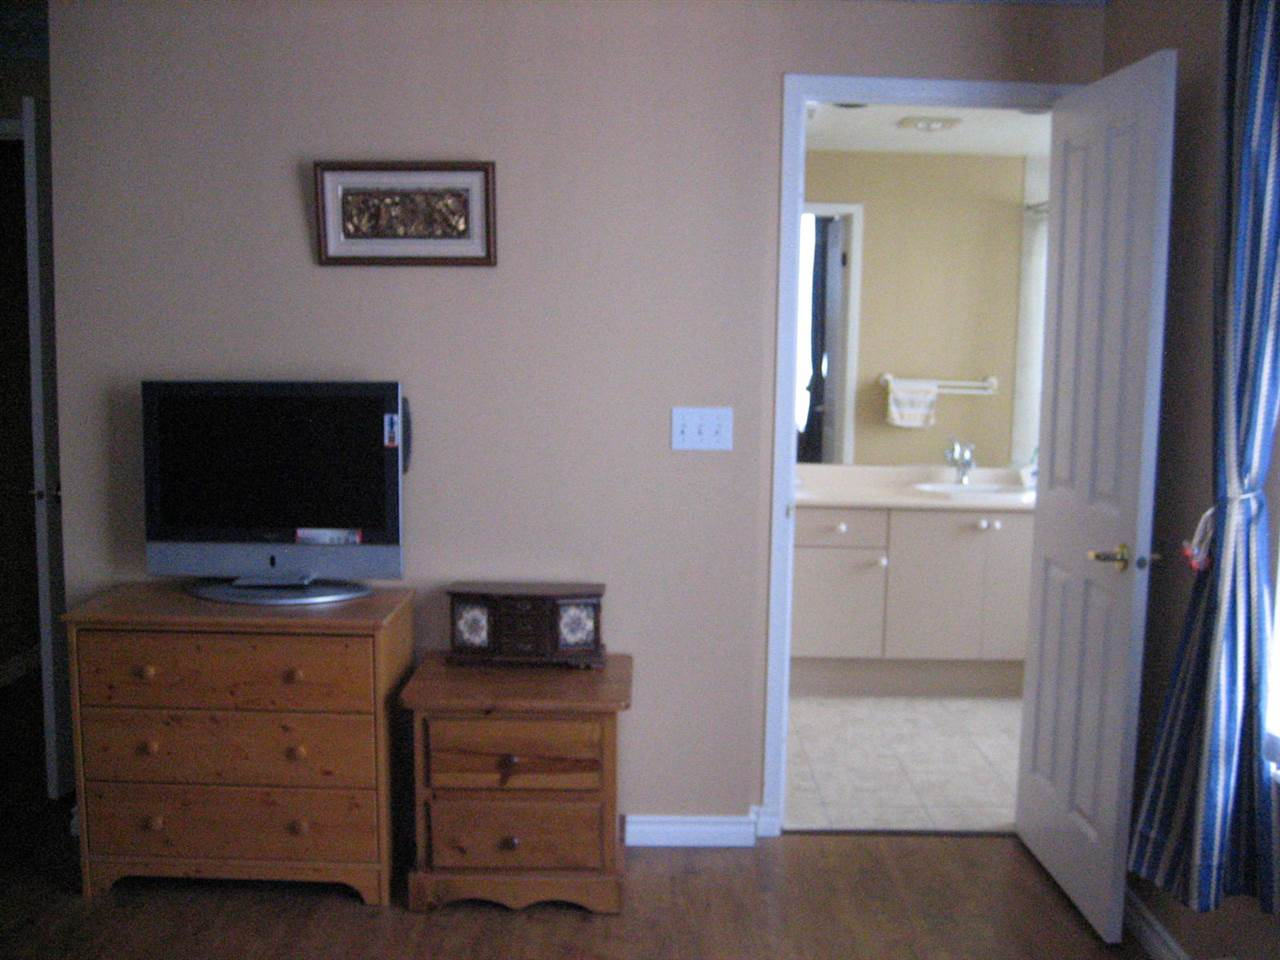 Condo Apartment at 2003 551 AUSTIN AVENUE, Unit 2003, Coquitlam, British Columbia. Image 11